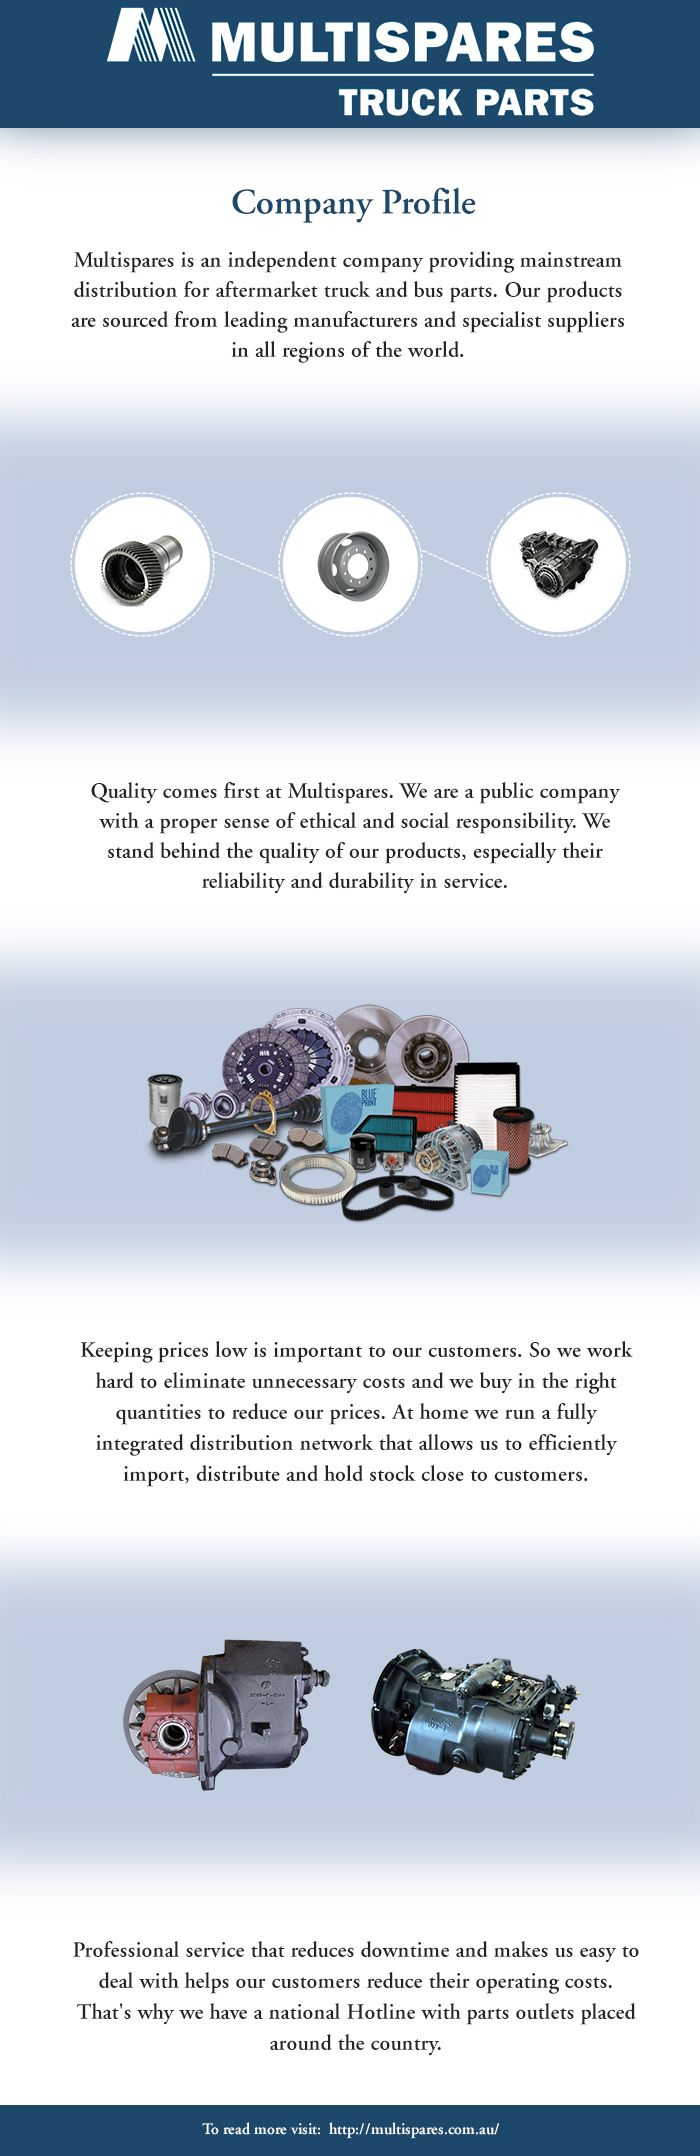 Multispares is an independent company providing mainstream distribution for aftermarket truck and bus parts our